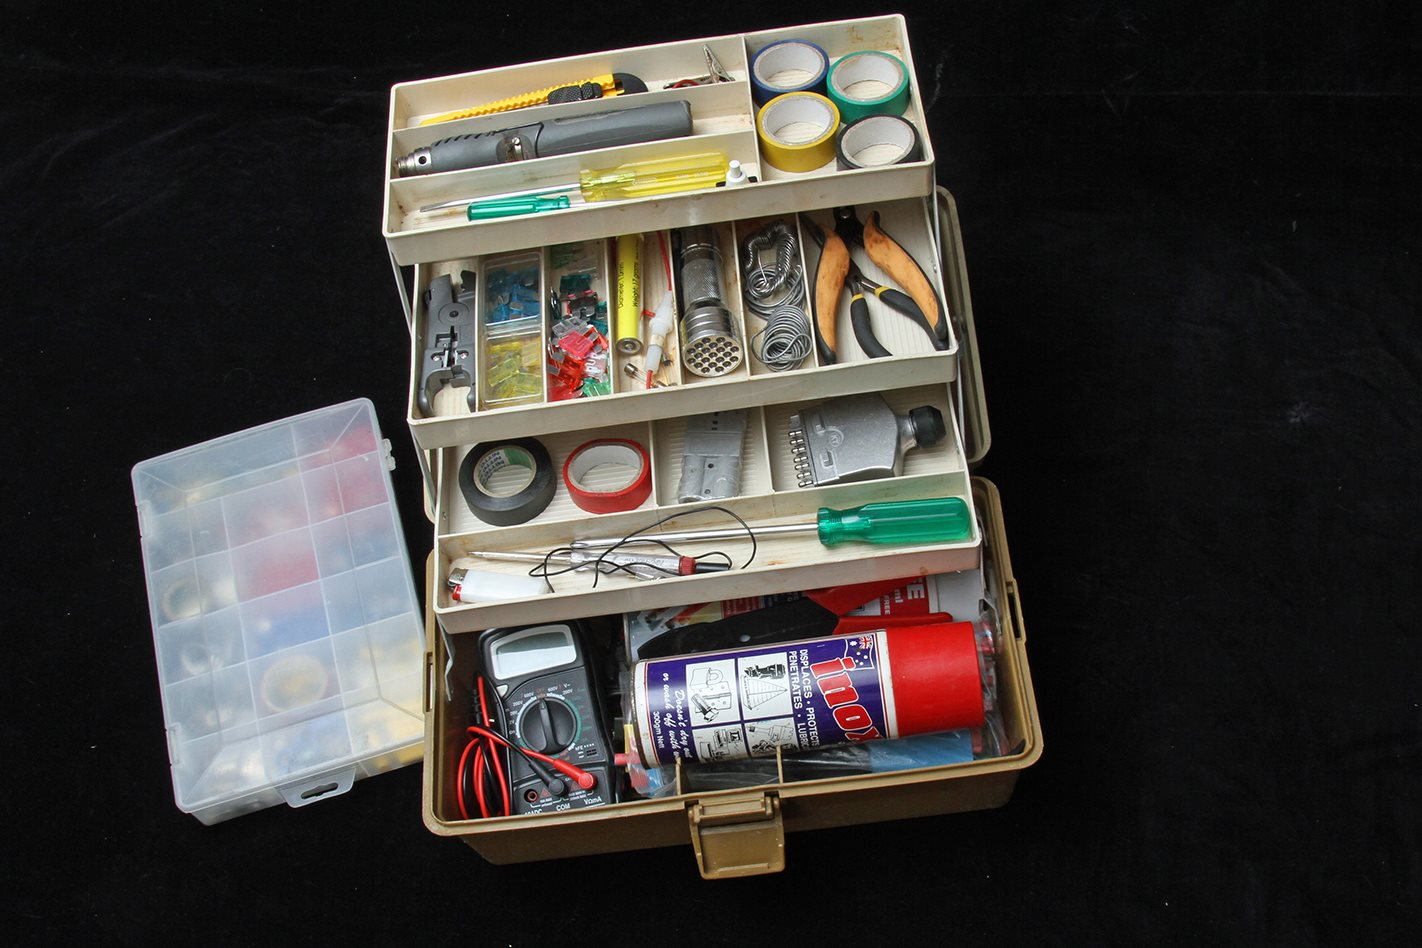 Stuarts Electrical emergency kit